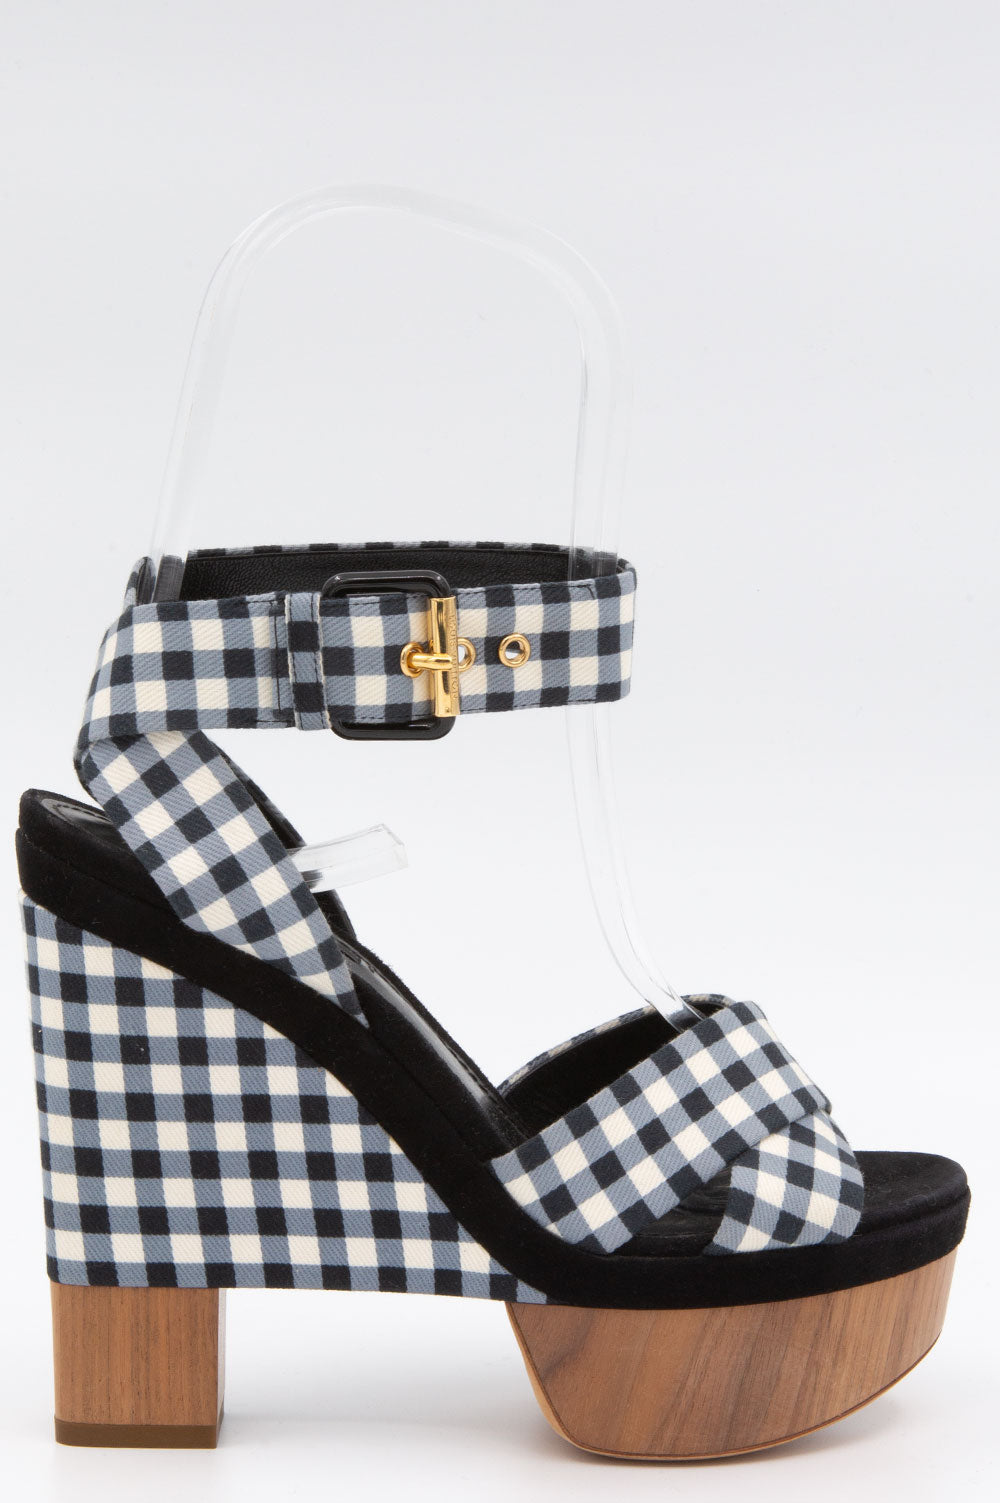 Louis Vuitton Gingham Heels in Schwarz-Weiss.